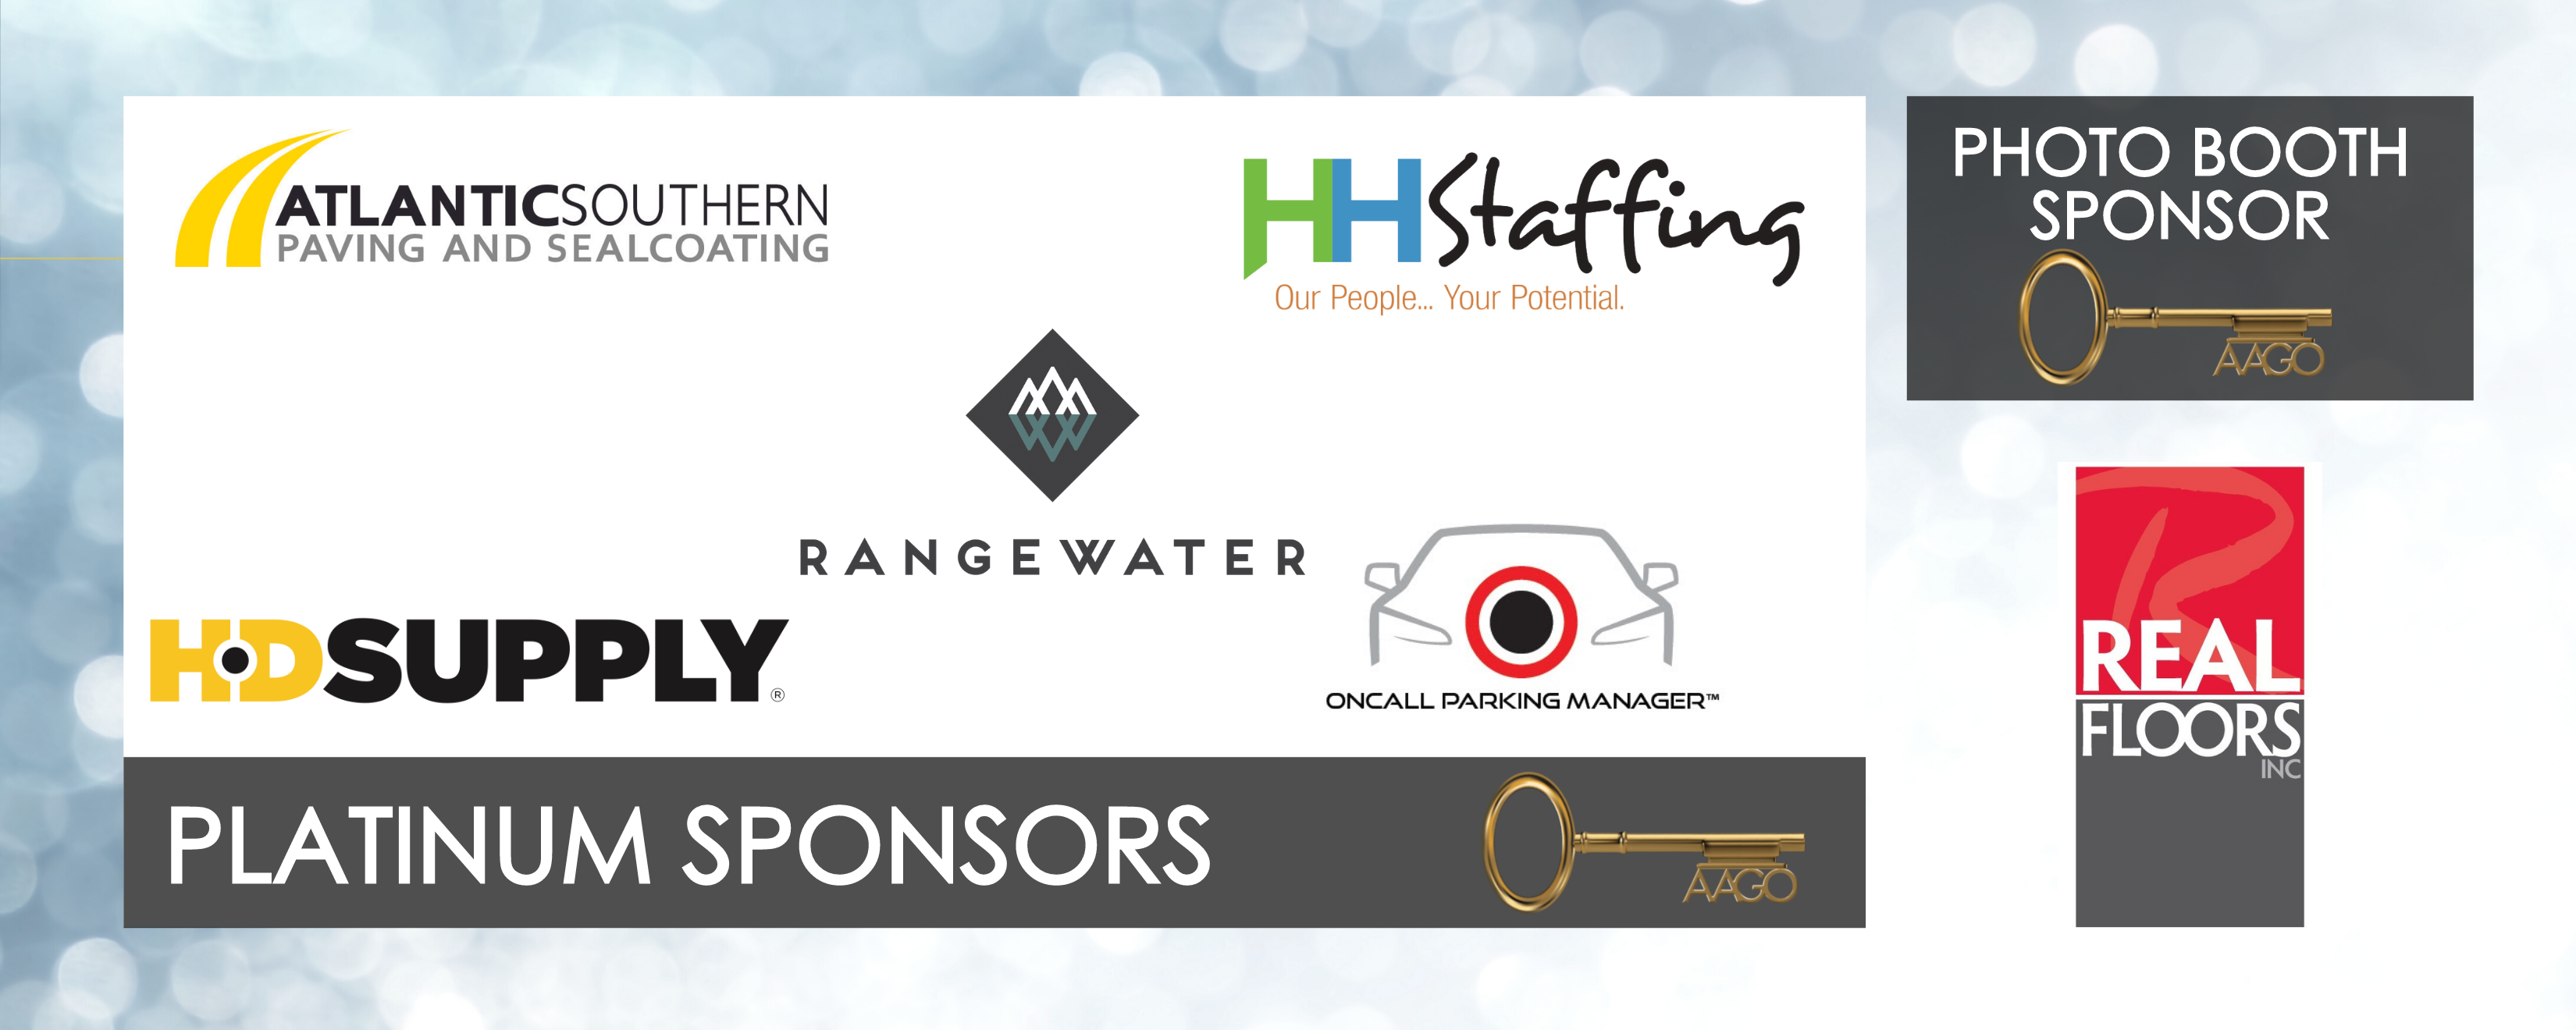 Platinum and Photo Booth Sponsors Banner